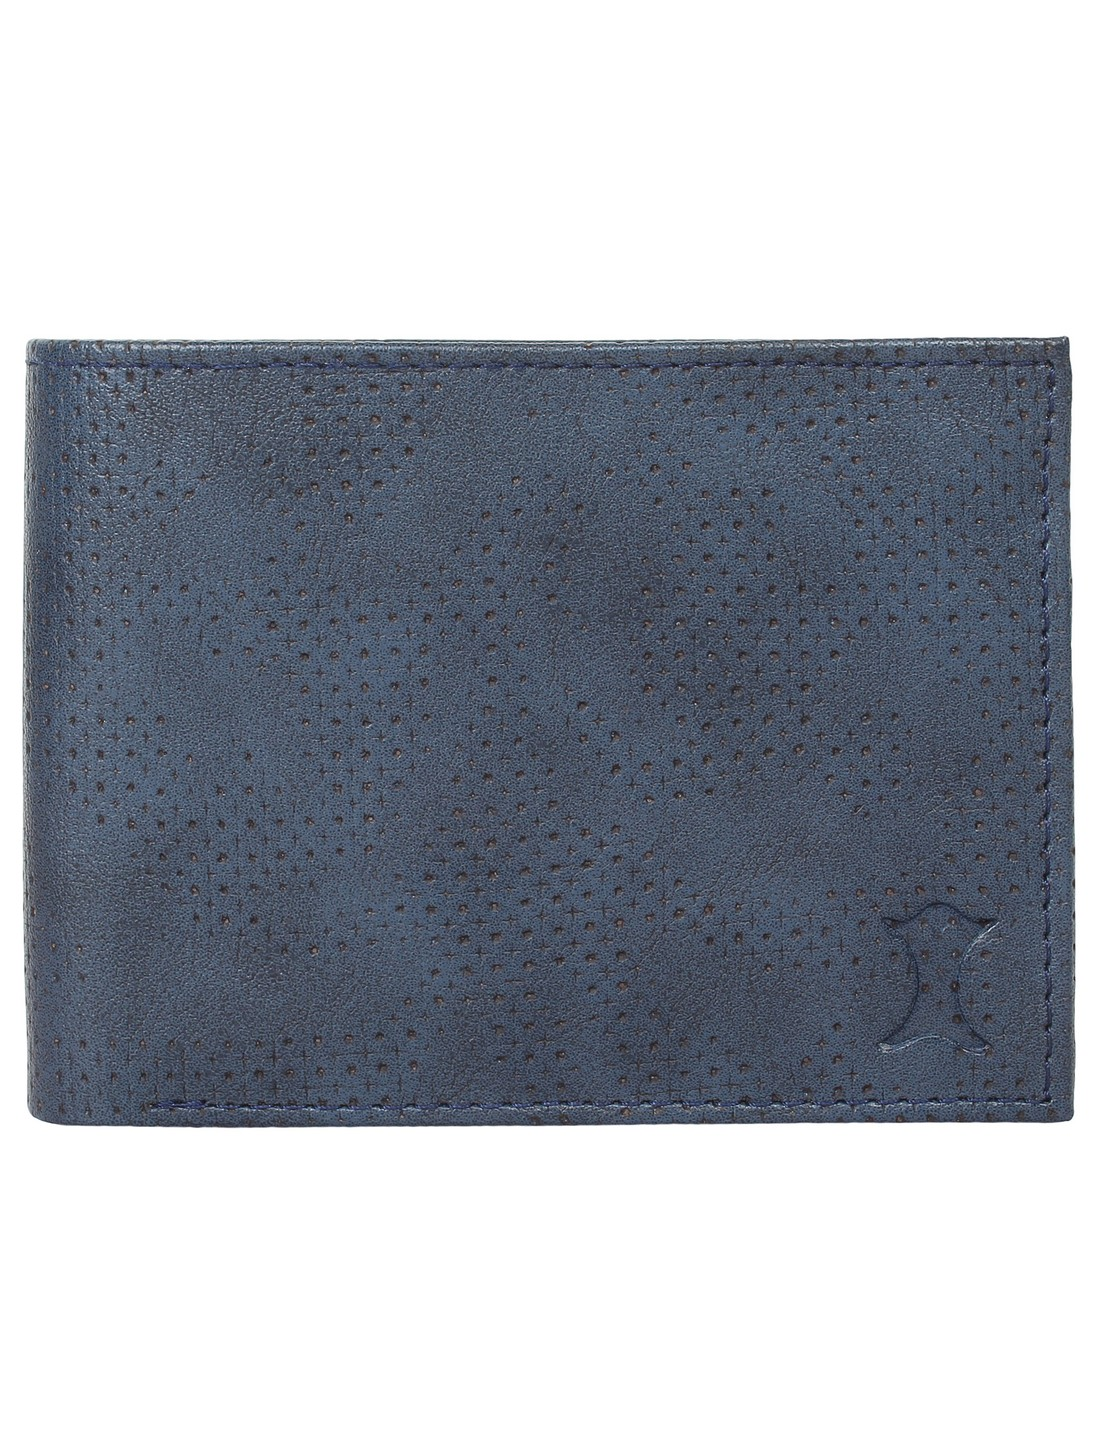 CREATURE | CREATURE Bi-Fold Pu-Leather Wallet with Multiple Card Slots for Men